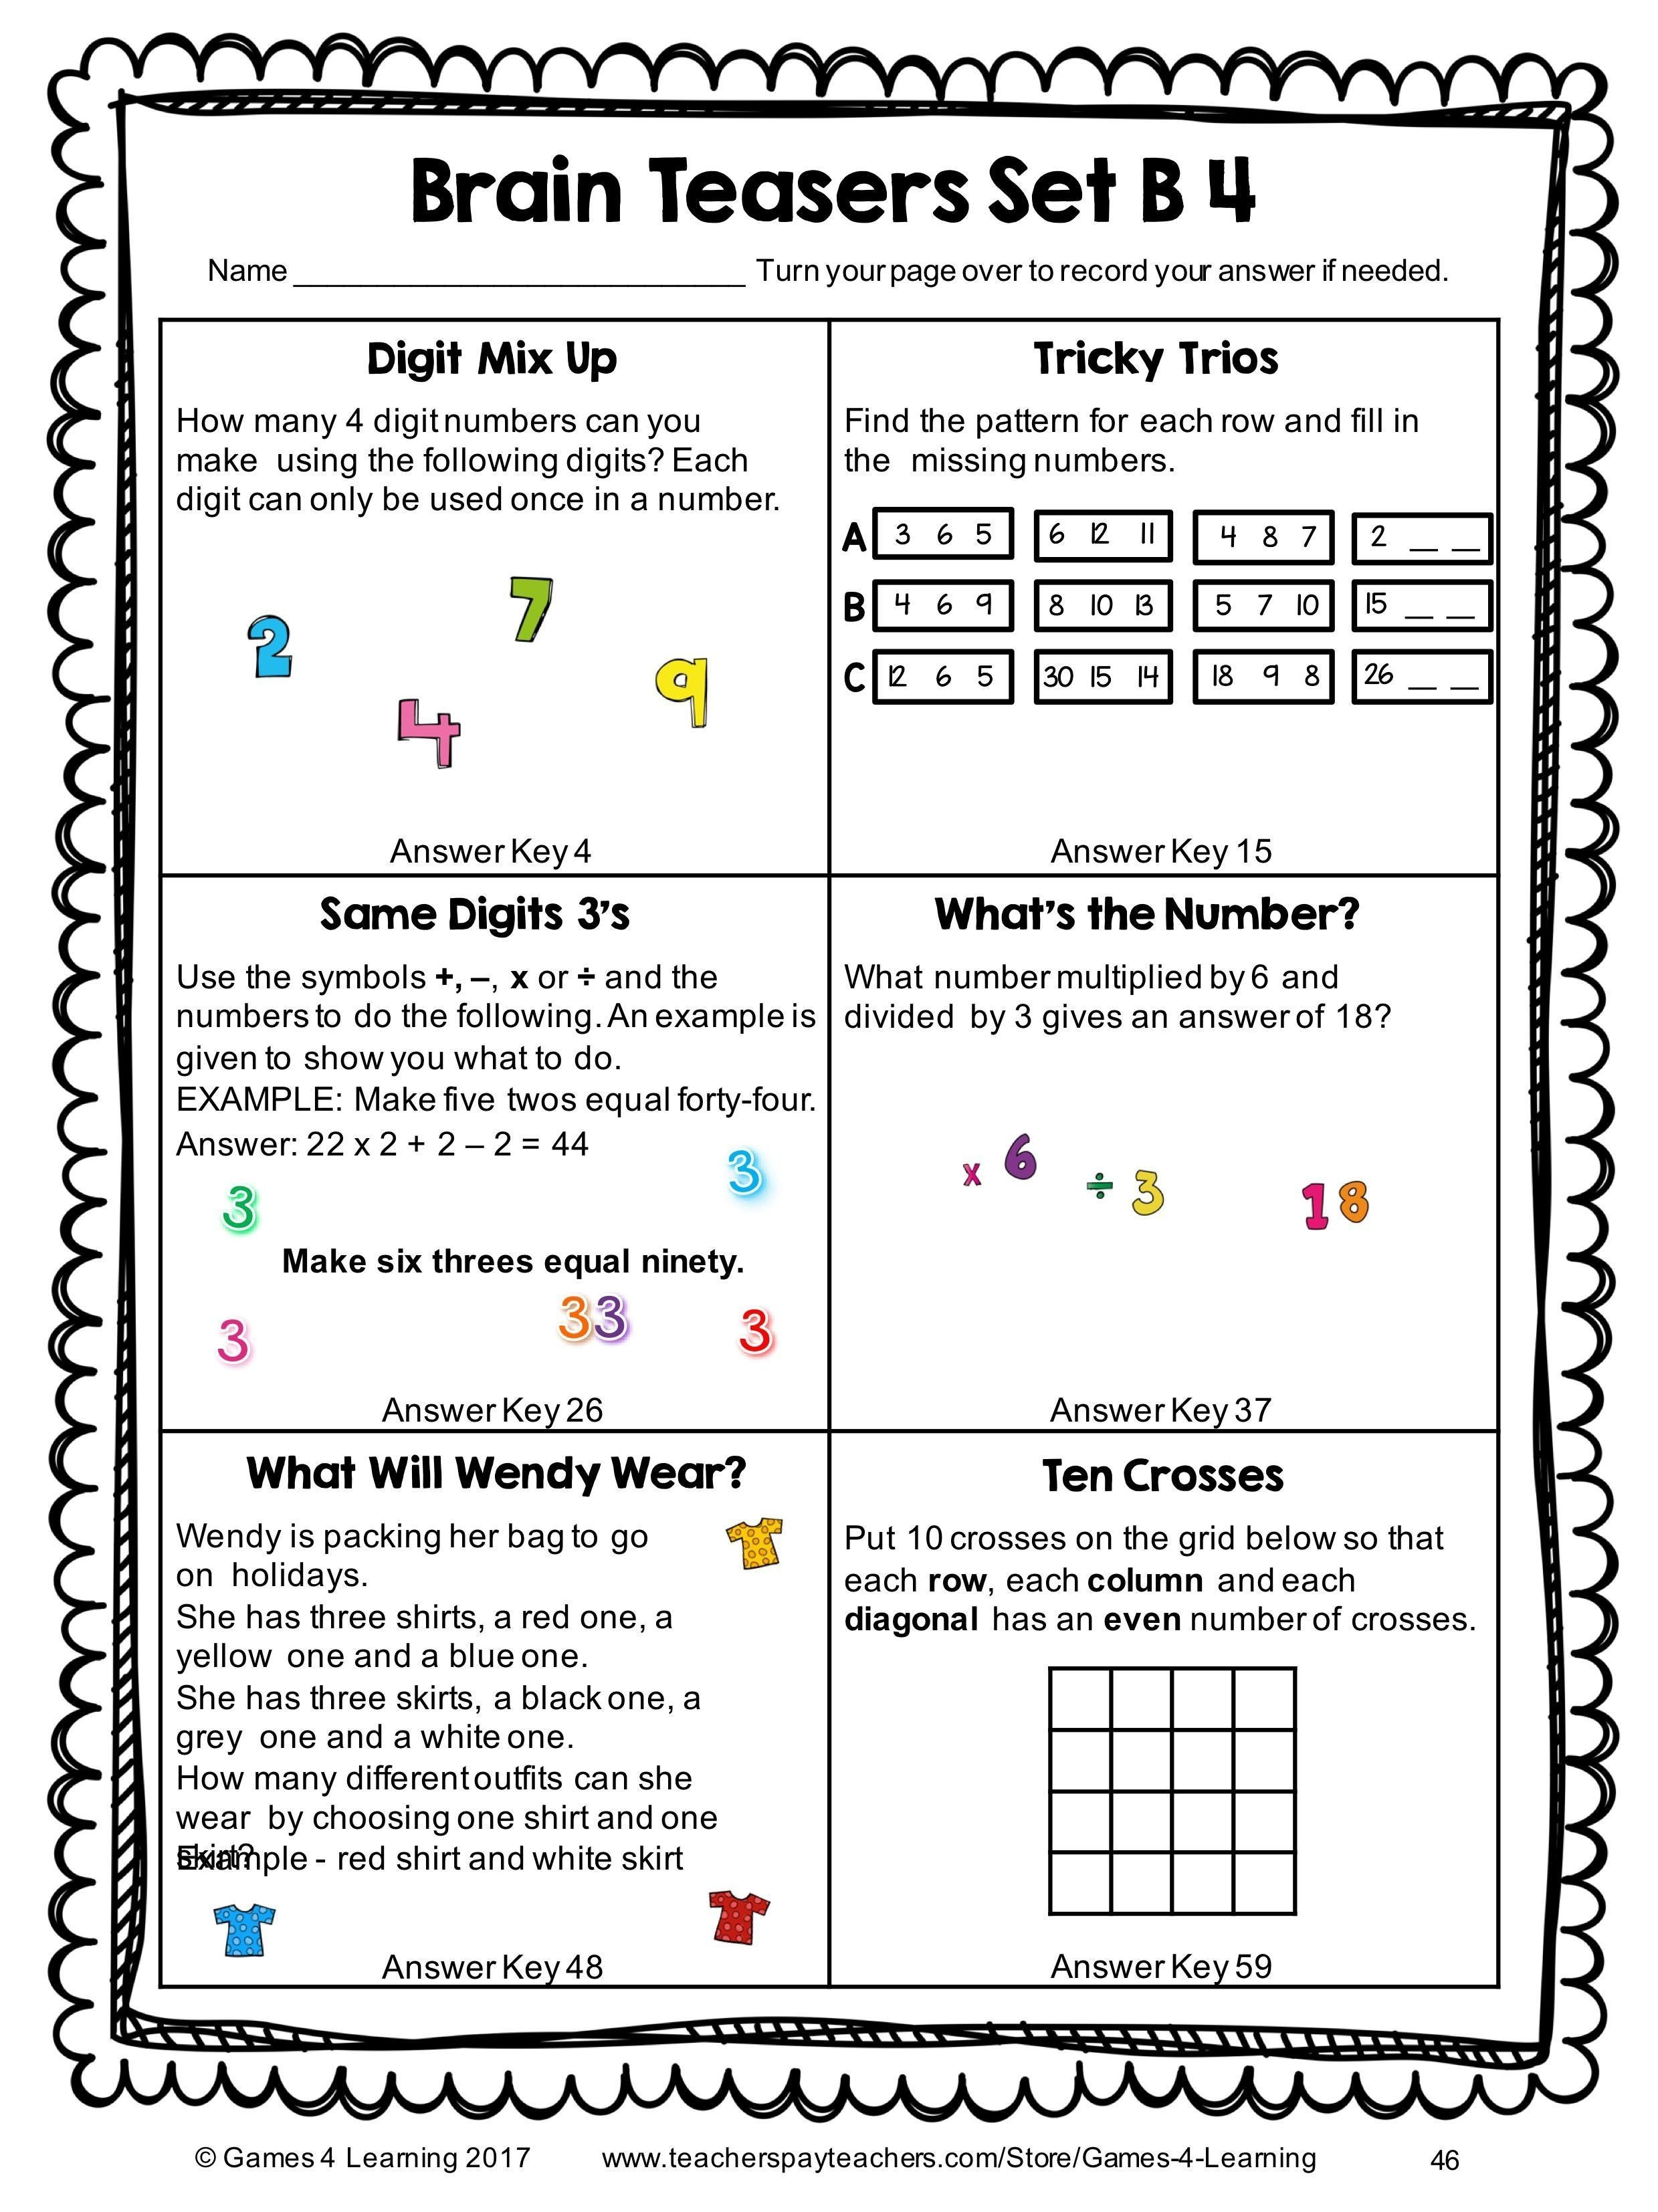 20 Math Puzzles To Engage Your Students